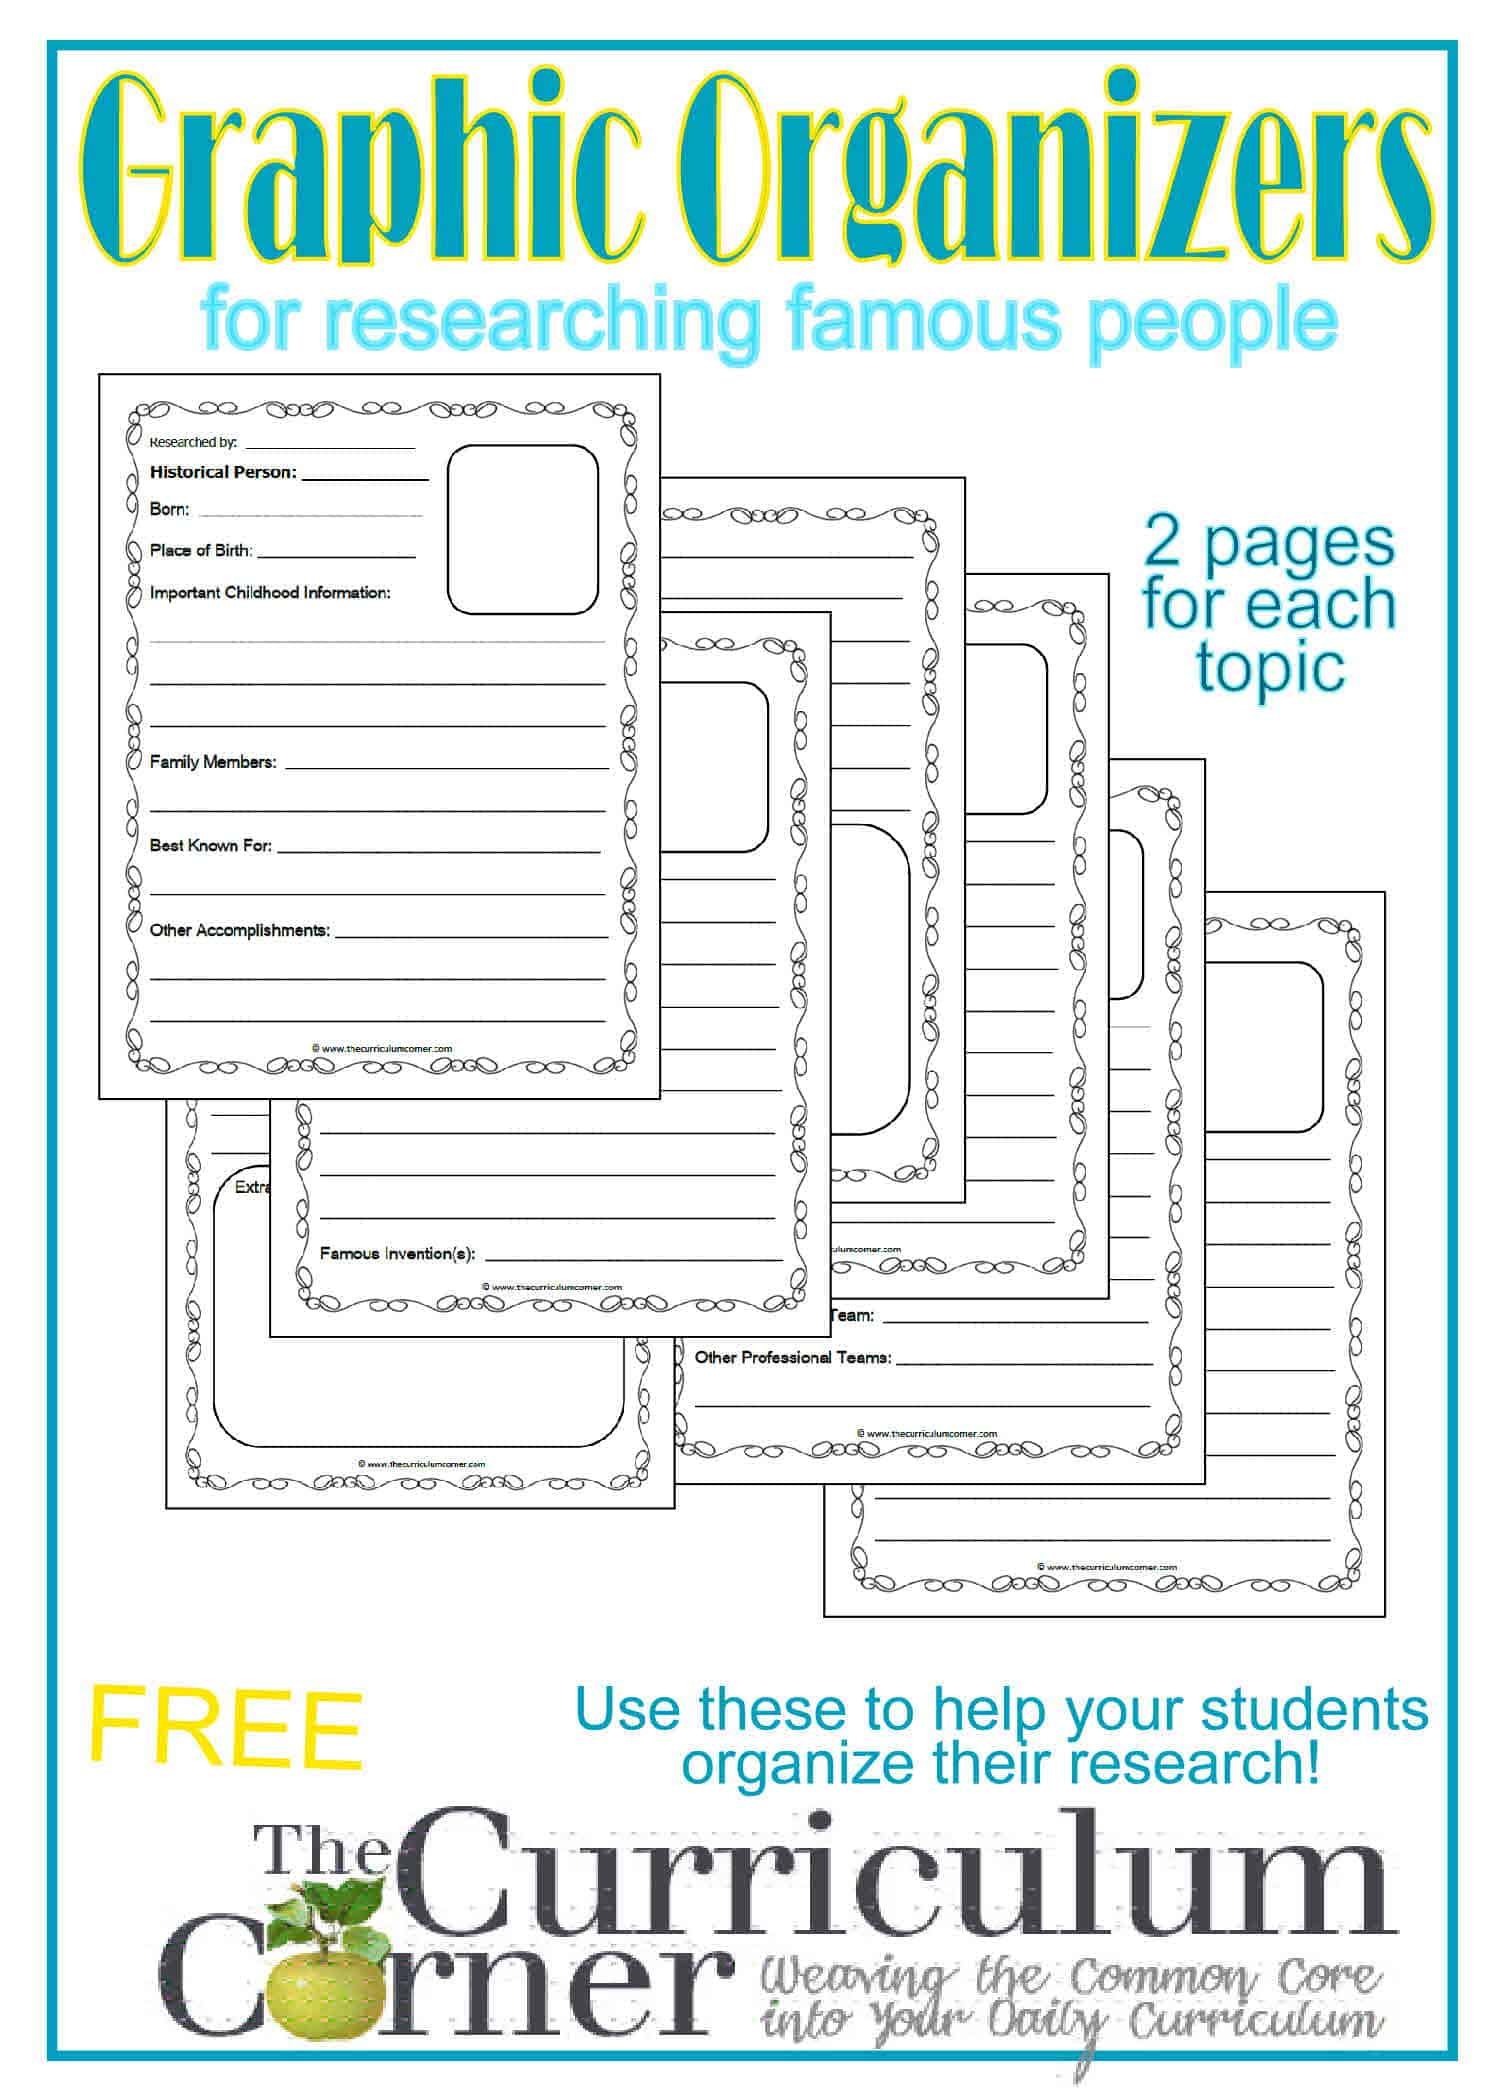 graphic regarding Biography Graphic Organizer Printable called Well known Persons Study Image Organizers - The Curriculum